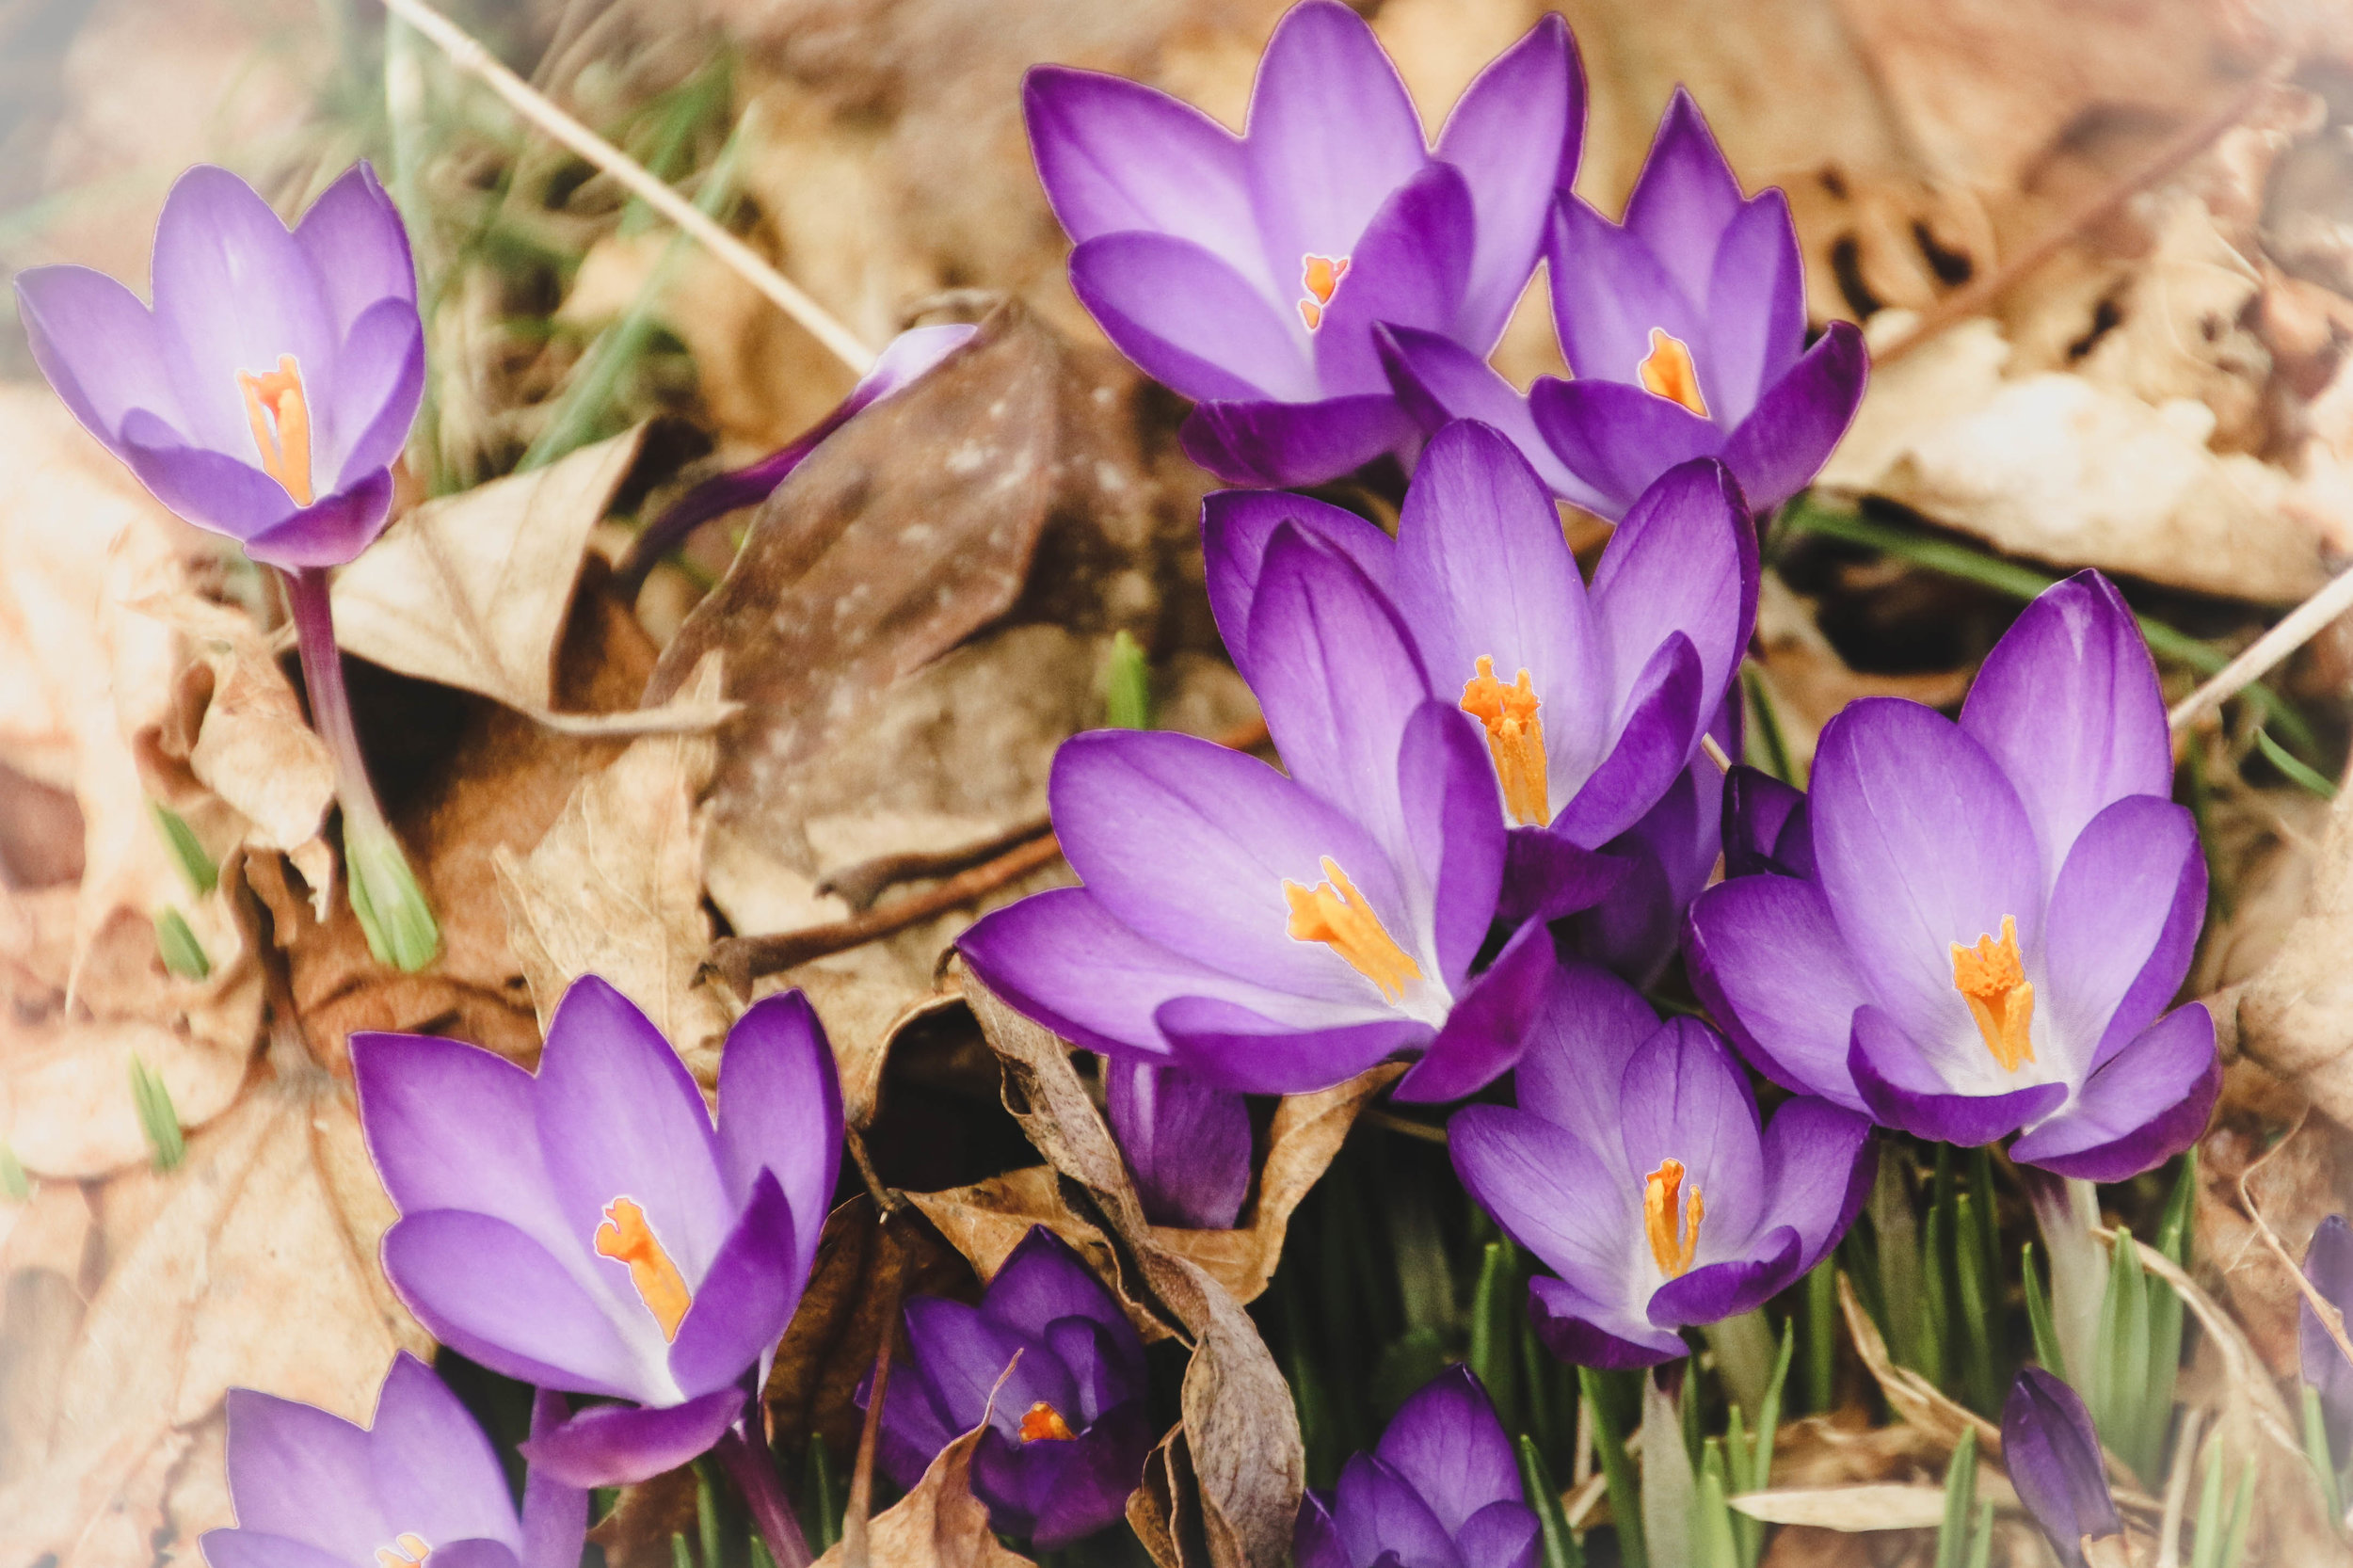 Back home again, in my own backyard, the crocuses broke through the mud and revealed themselves in all their beauty and strength.  Tiny little spring flowers pushing their weight around.  Like us, they refused to wait any longer for Spring.  I'm renewed in their beauty.